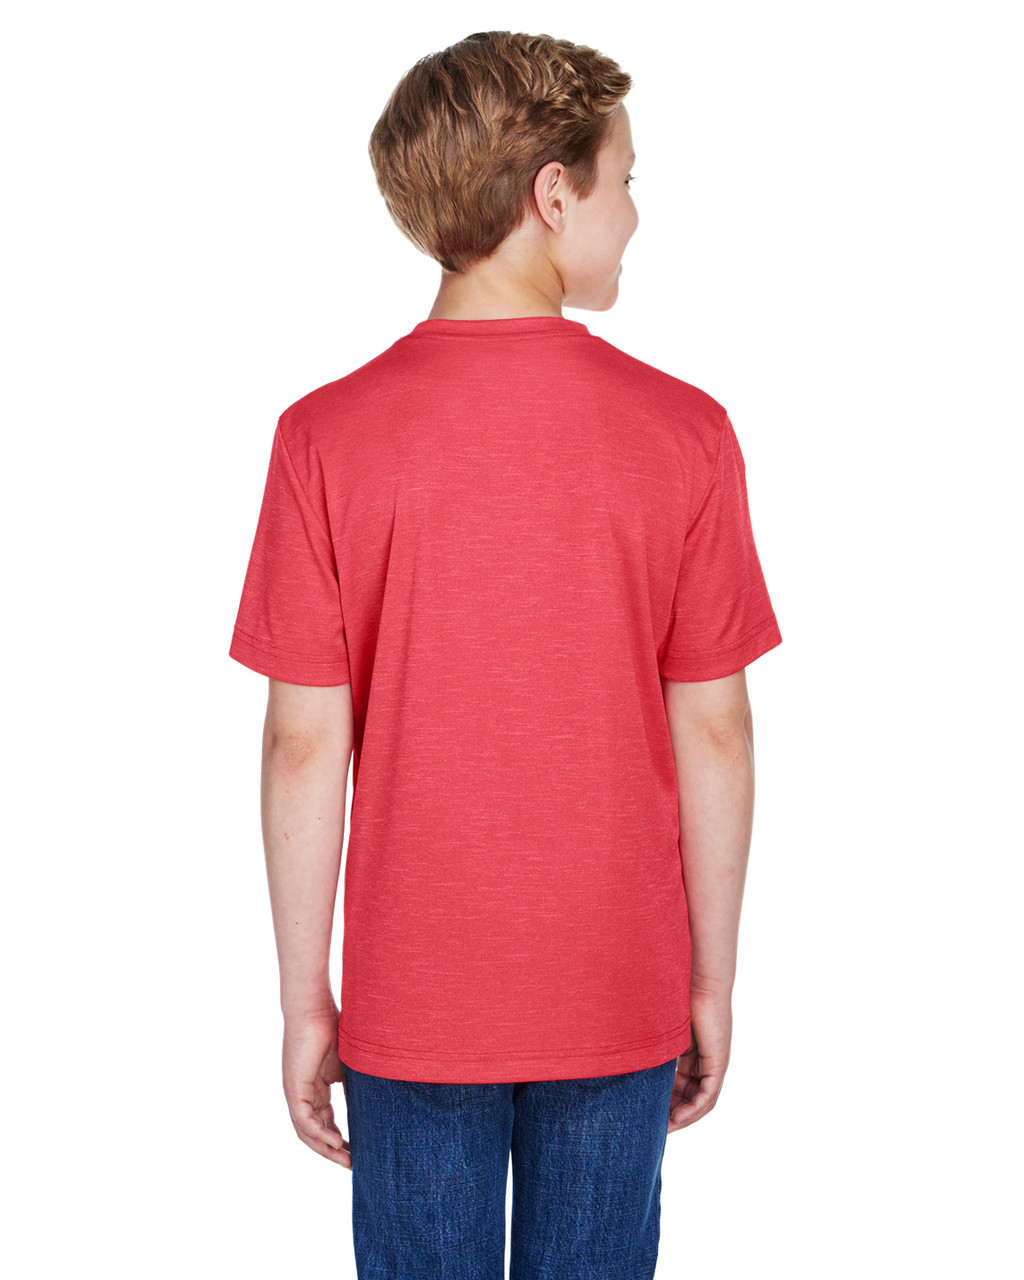 Sport Red Heather - Back, TT11HY Team 365 Youth Sonic Heather Performance T-Shirt | BlankClothing.ca